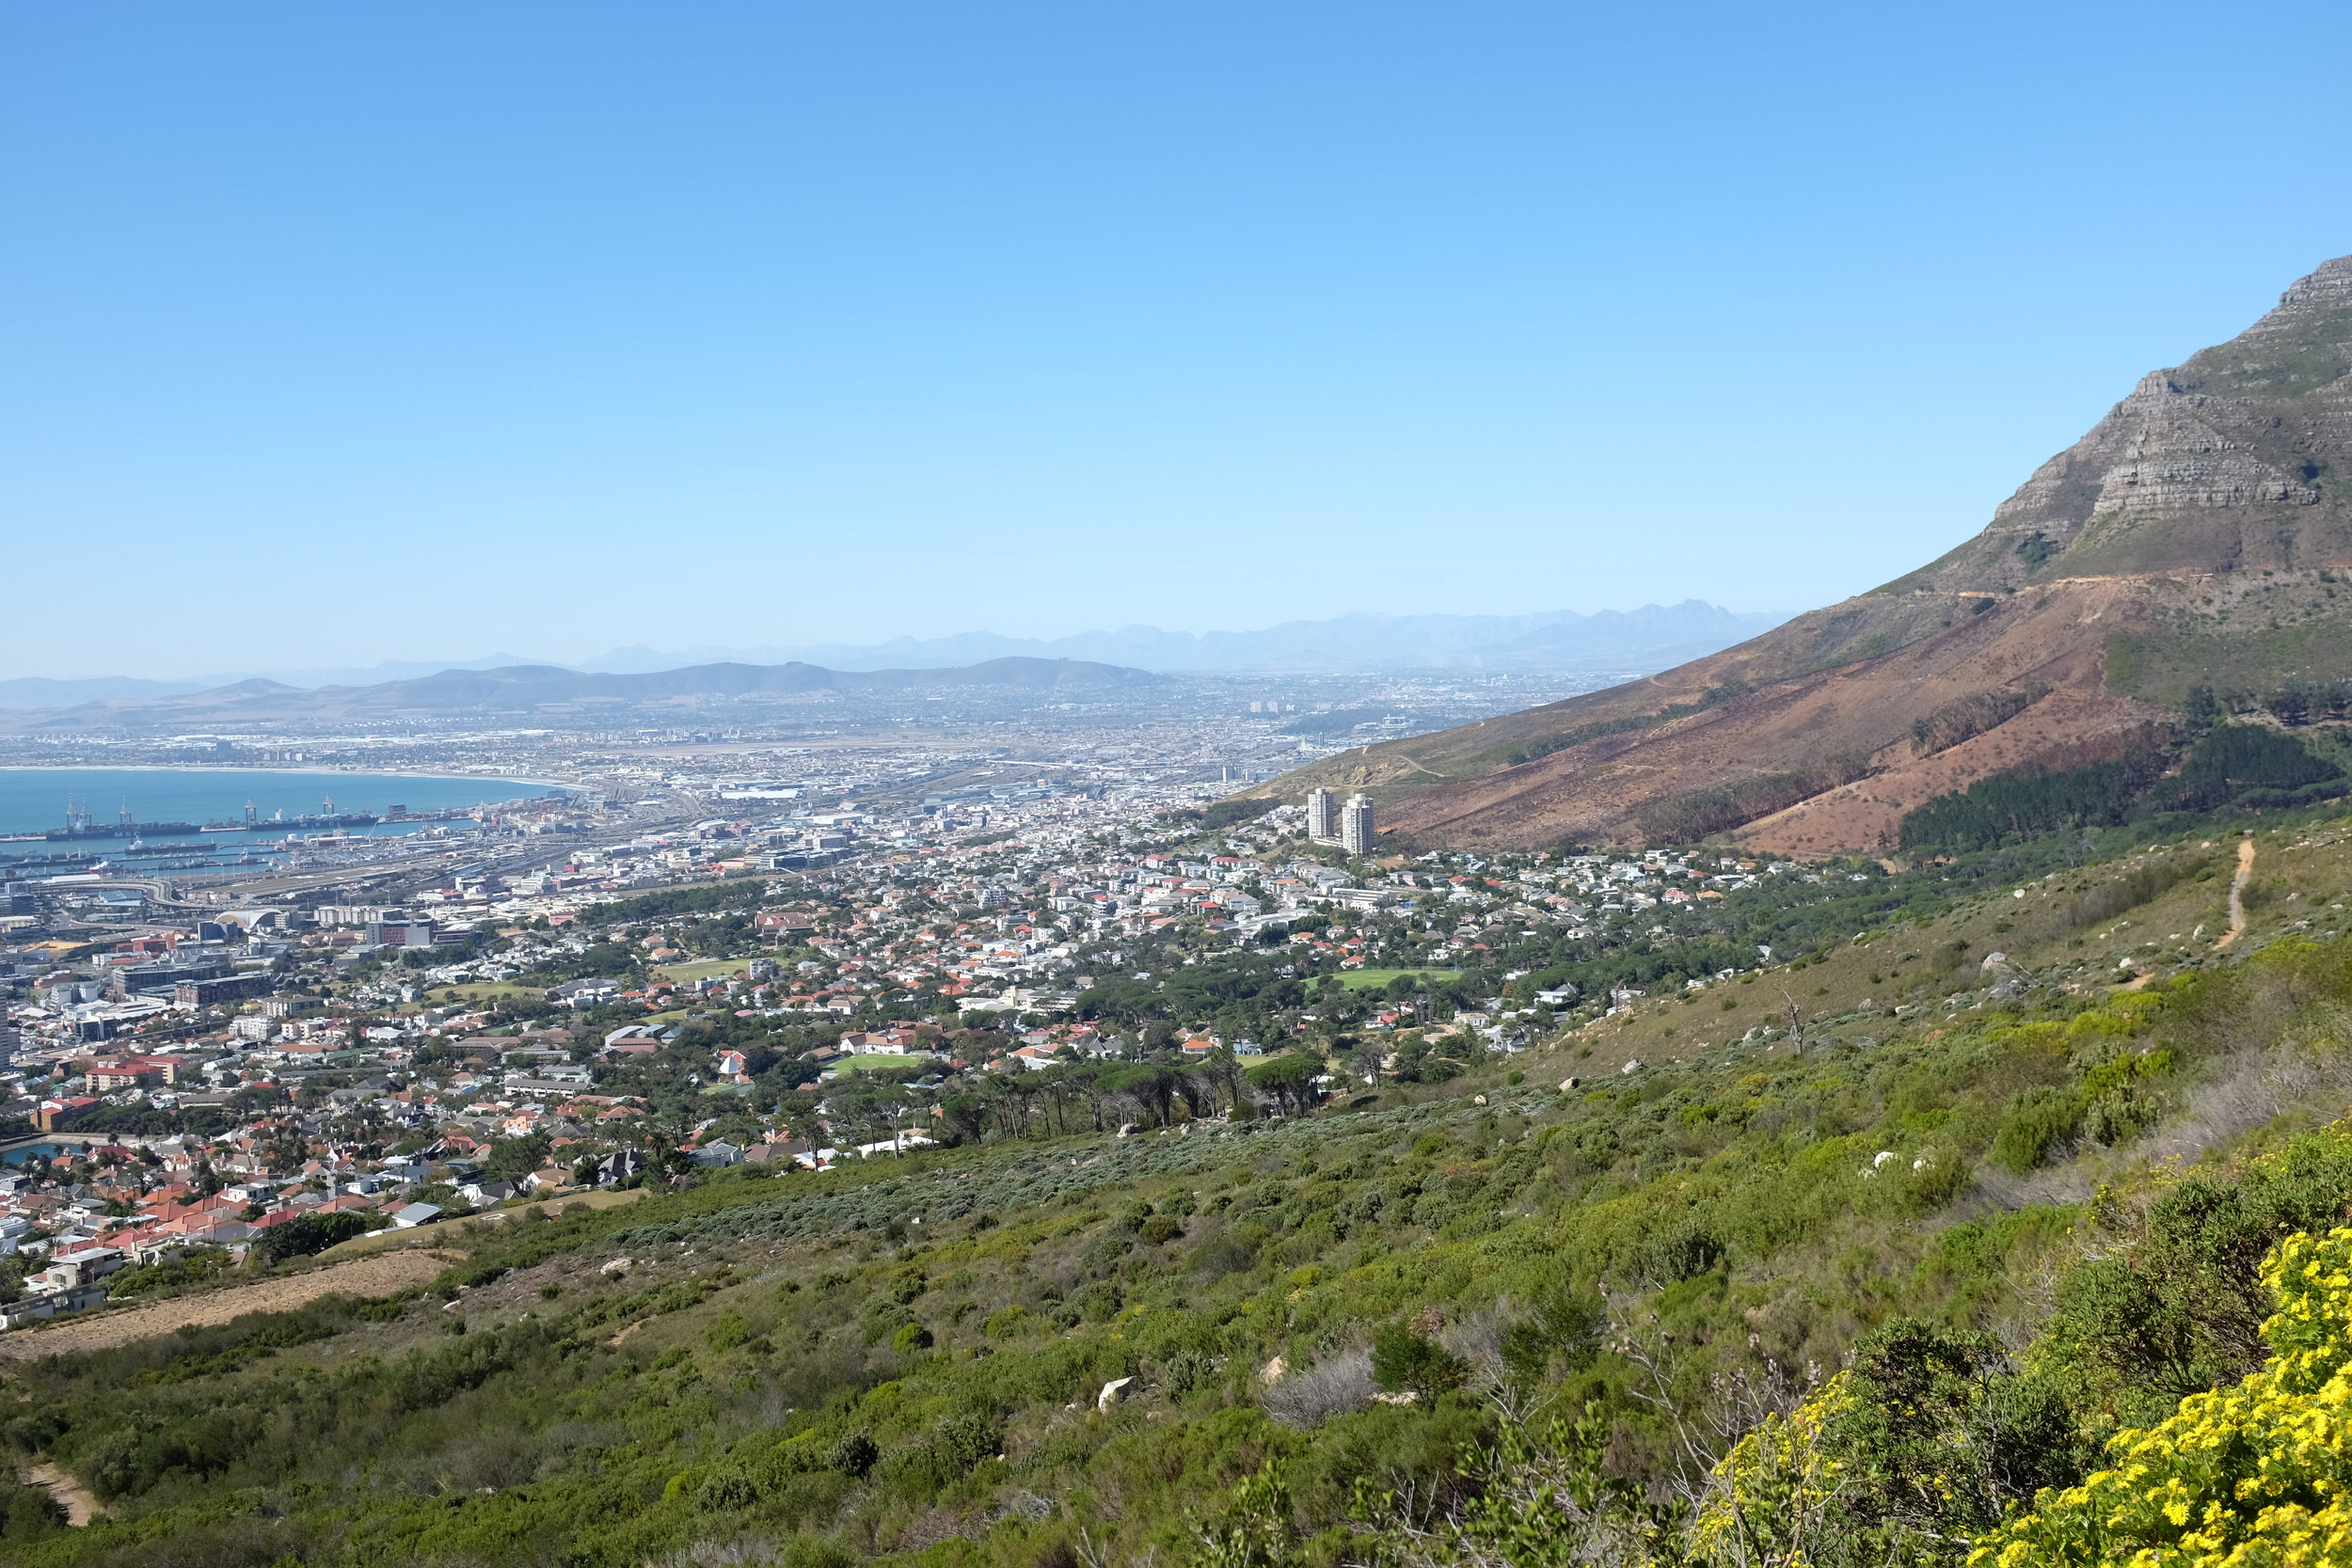 A view of Cape Town from atop Table Mountain.